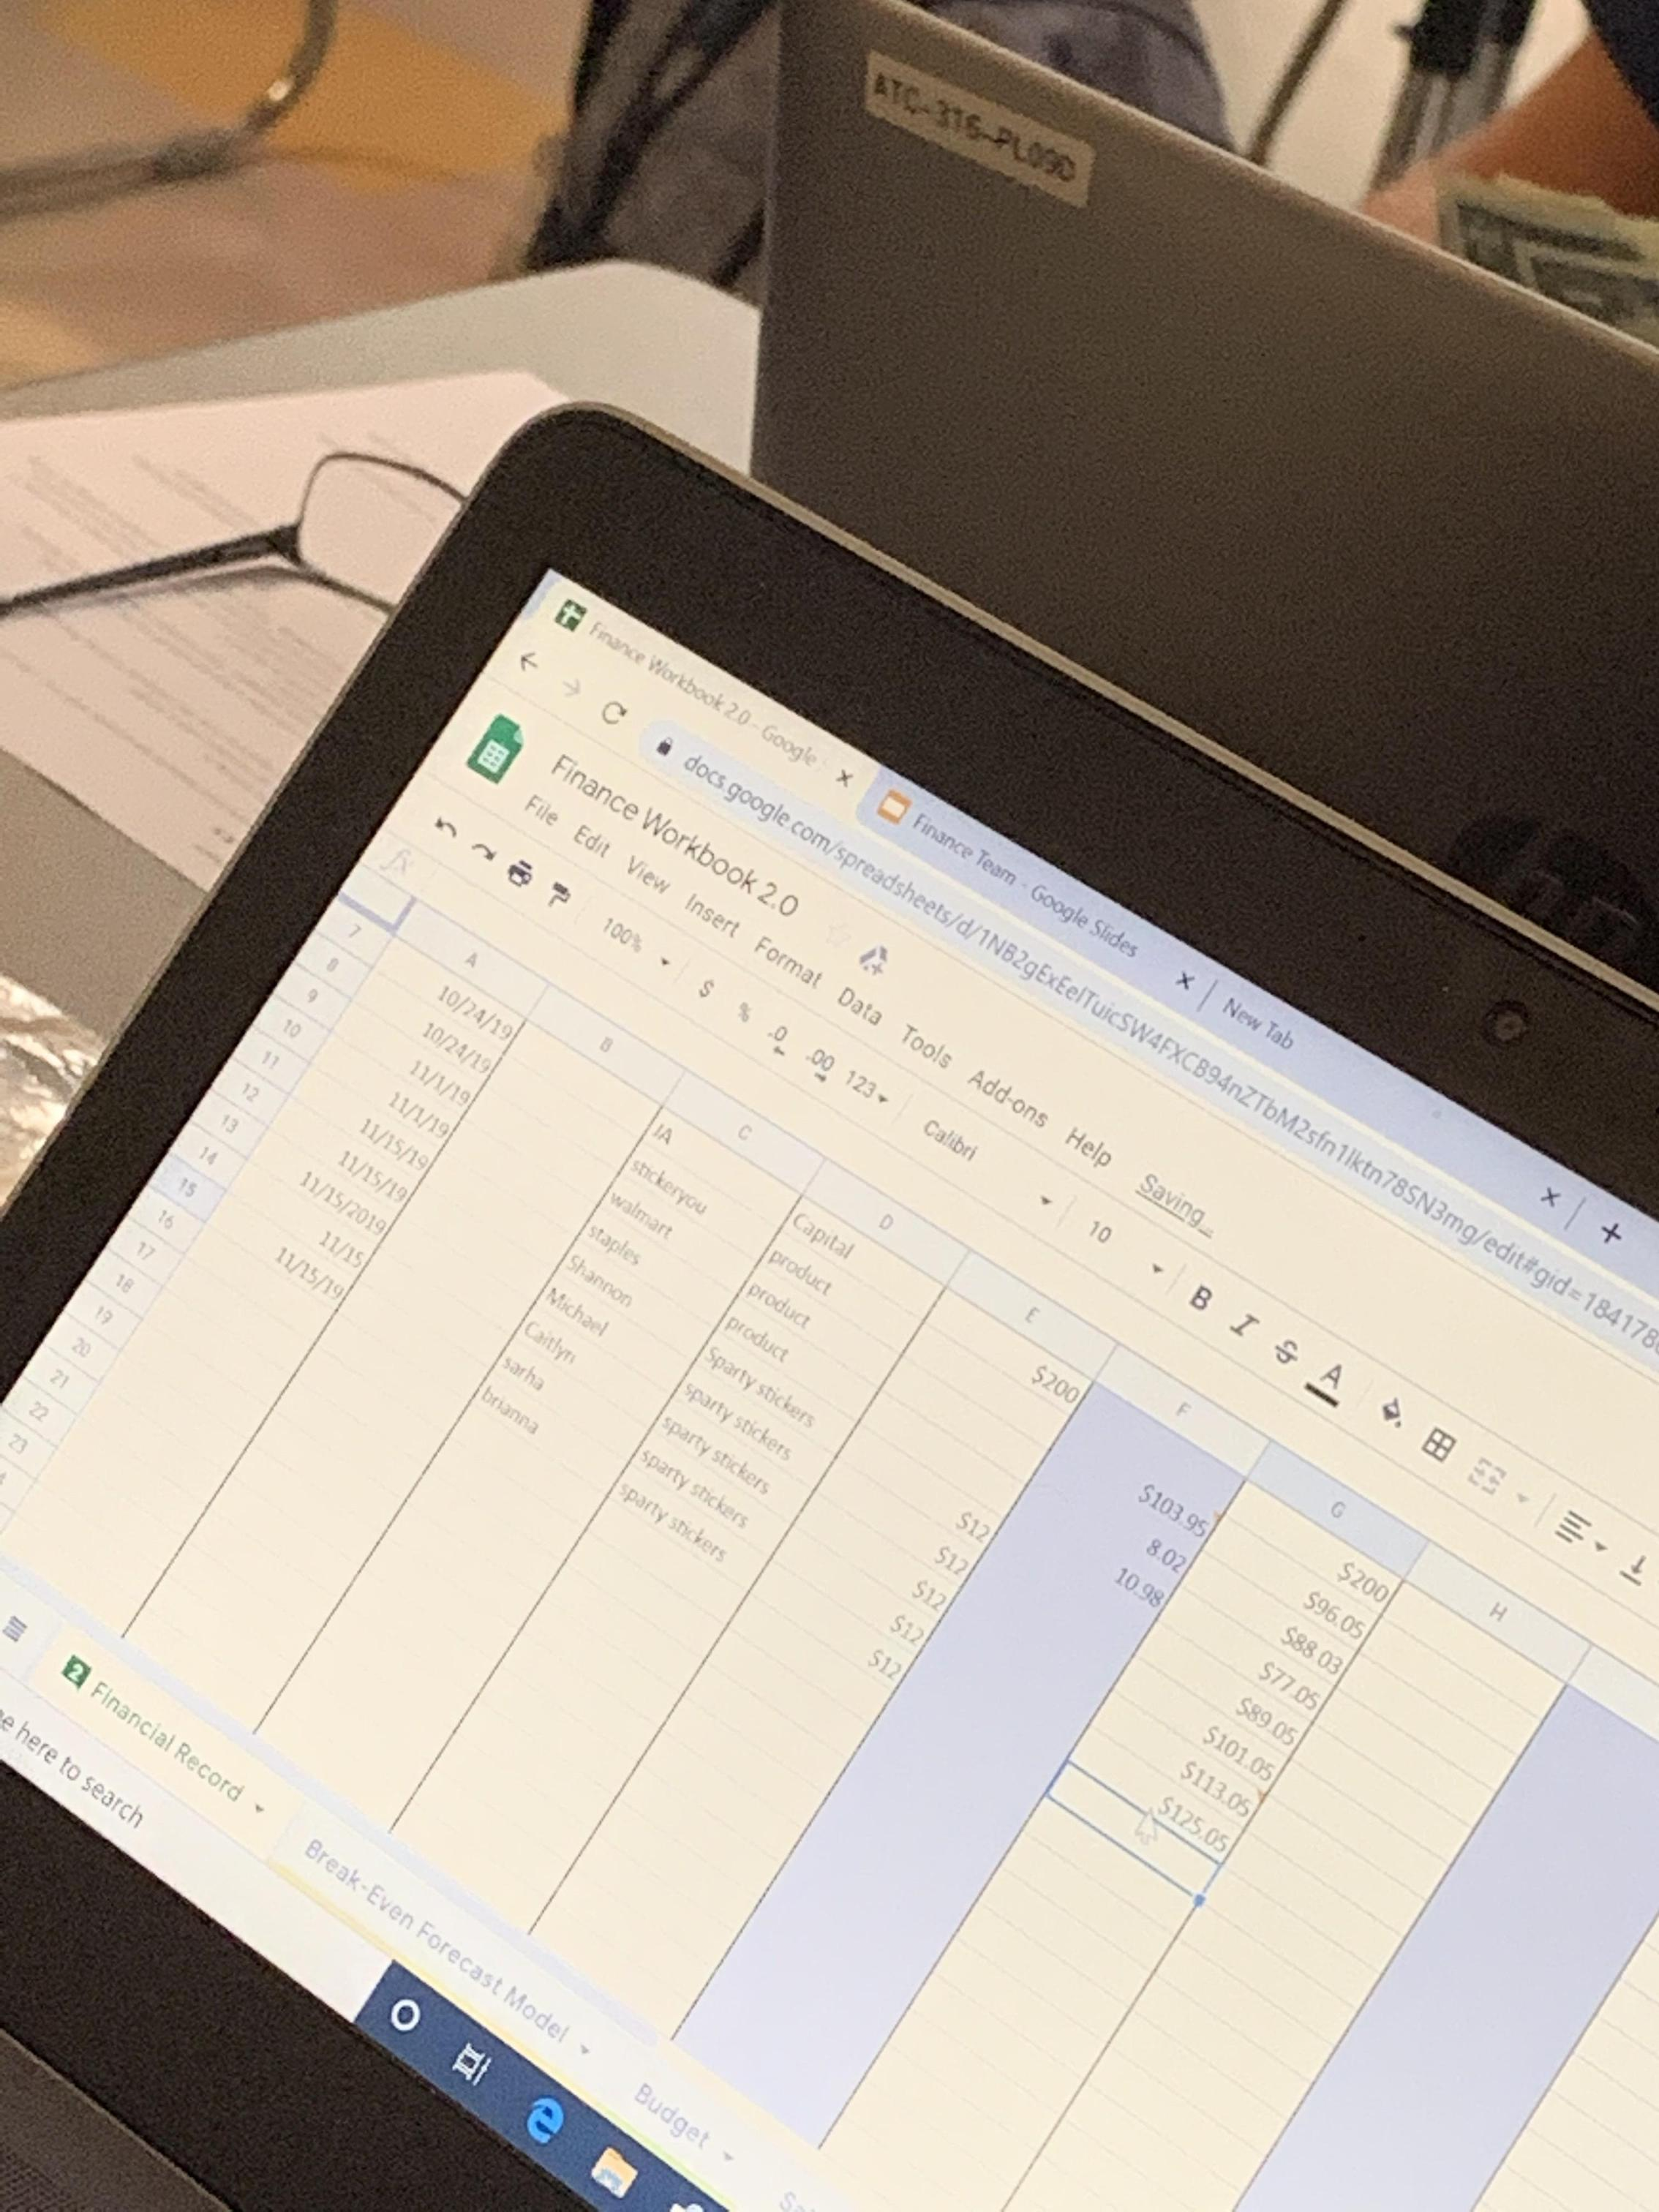 Excel sheet open on computer in Business class